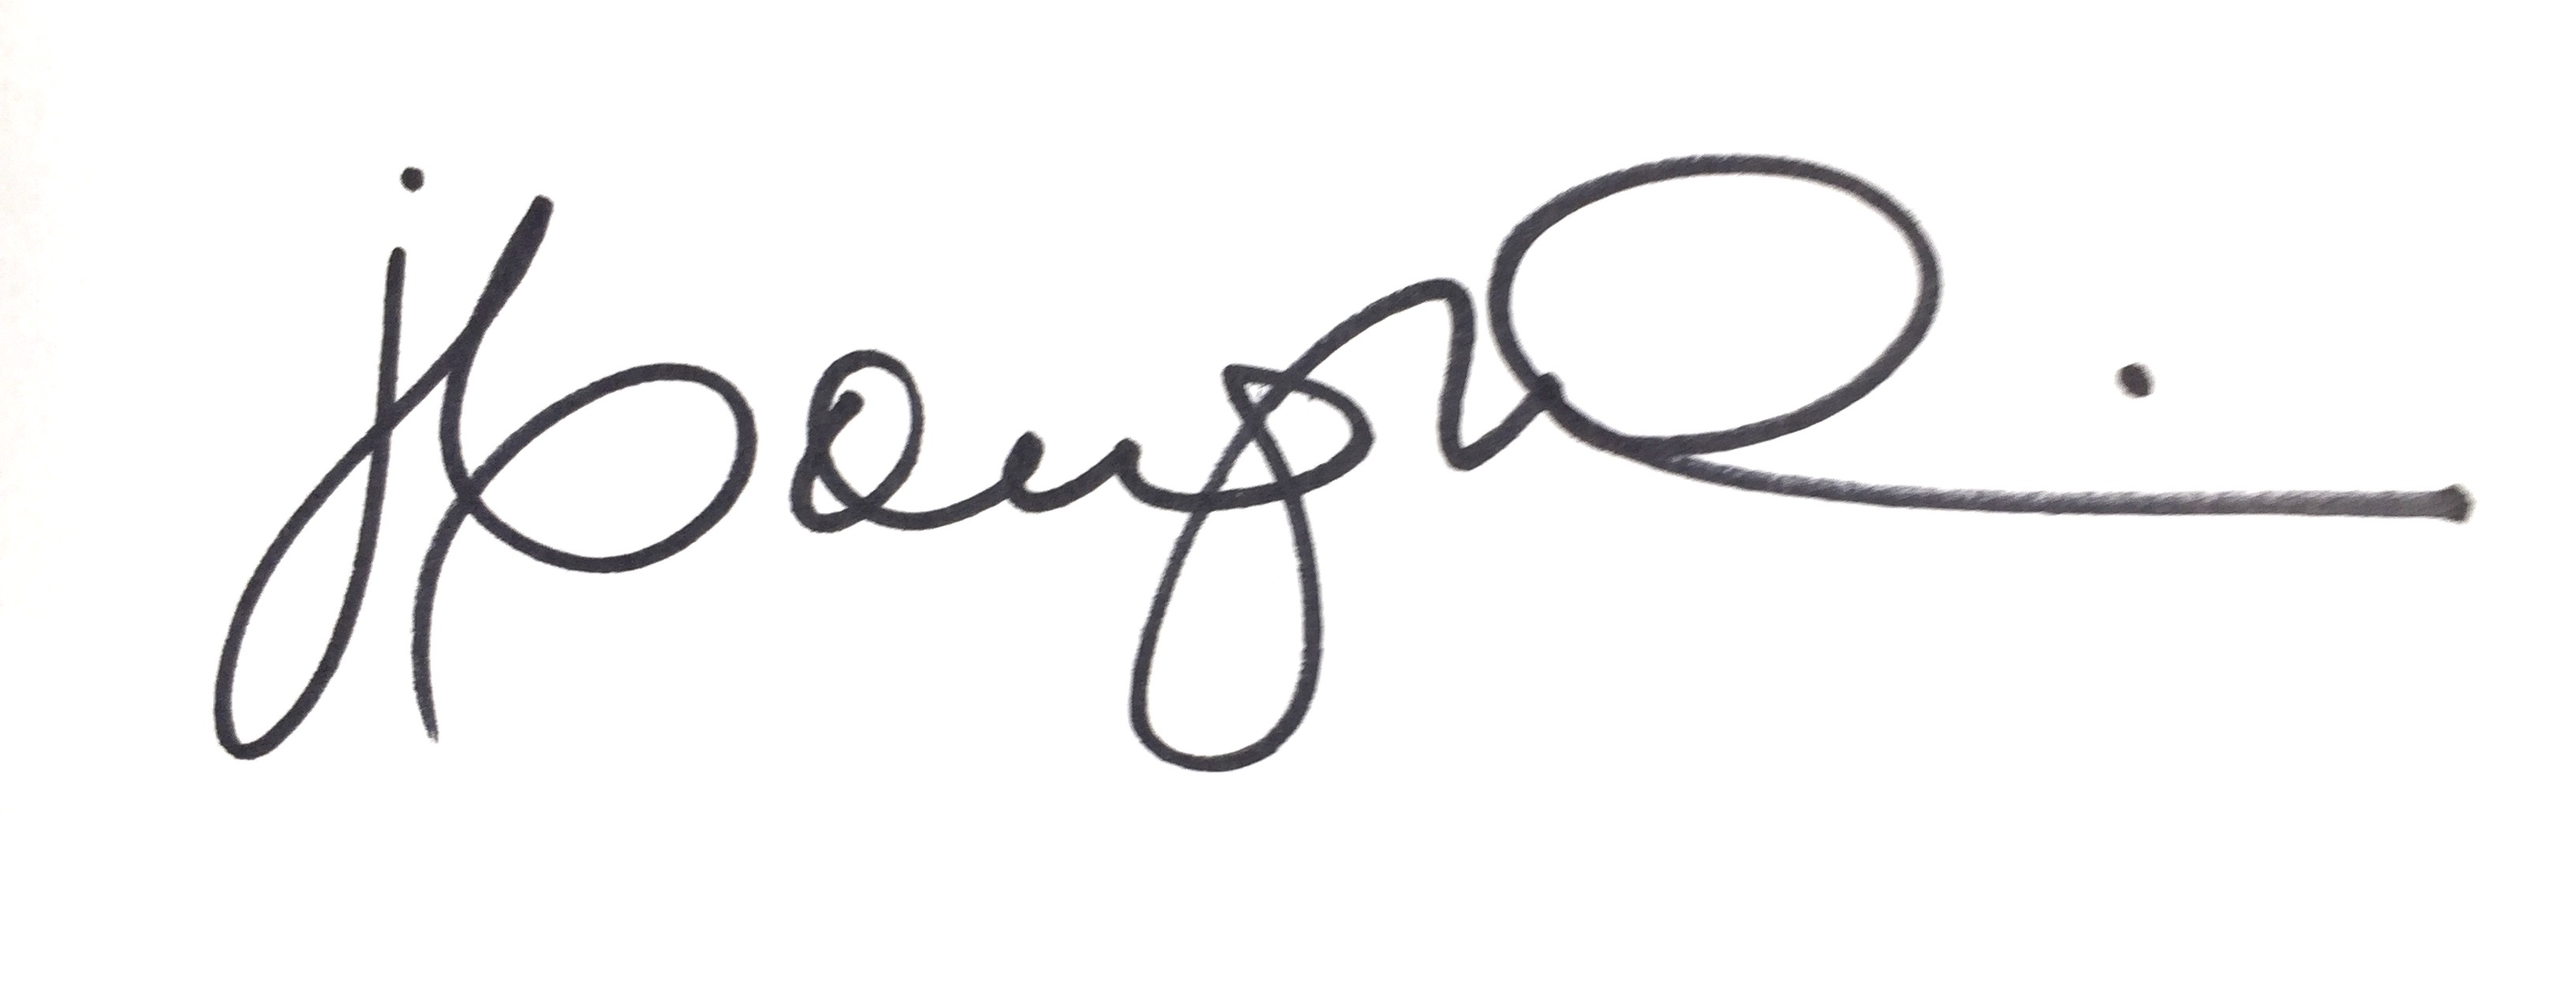 Joanne coughlin's Signature